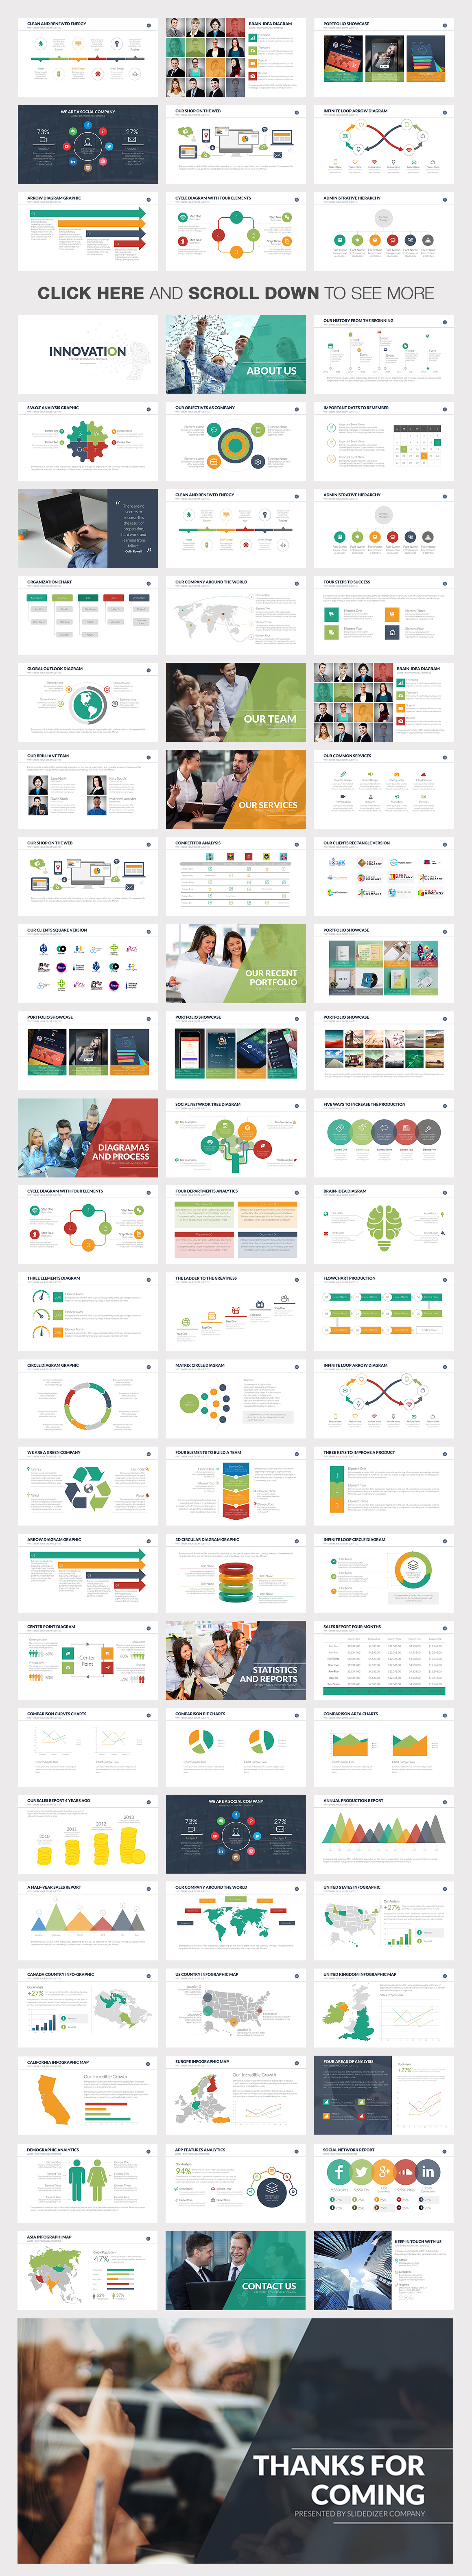 Innovation powerpoint template by slidedizer on creative market innovation powerpoint template by slidedizer on creative market toneelgroepblik Gallery